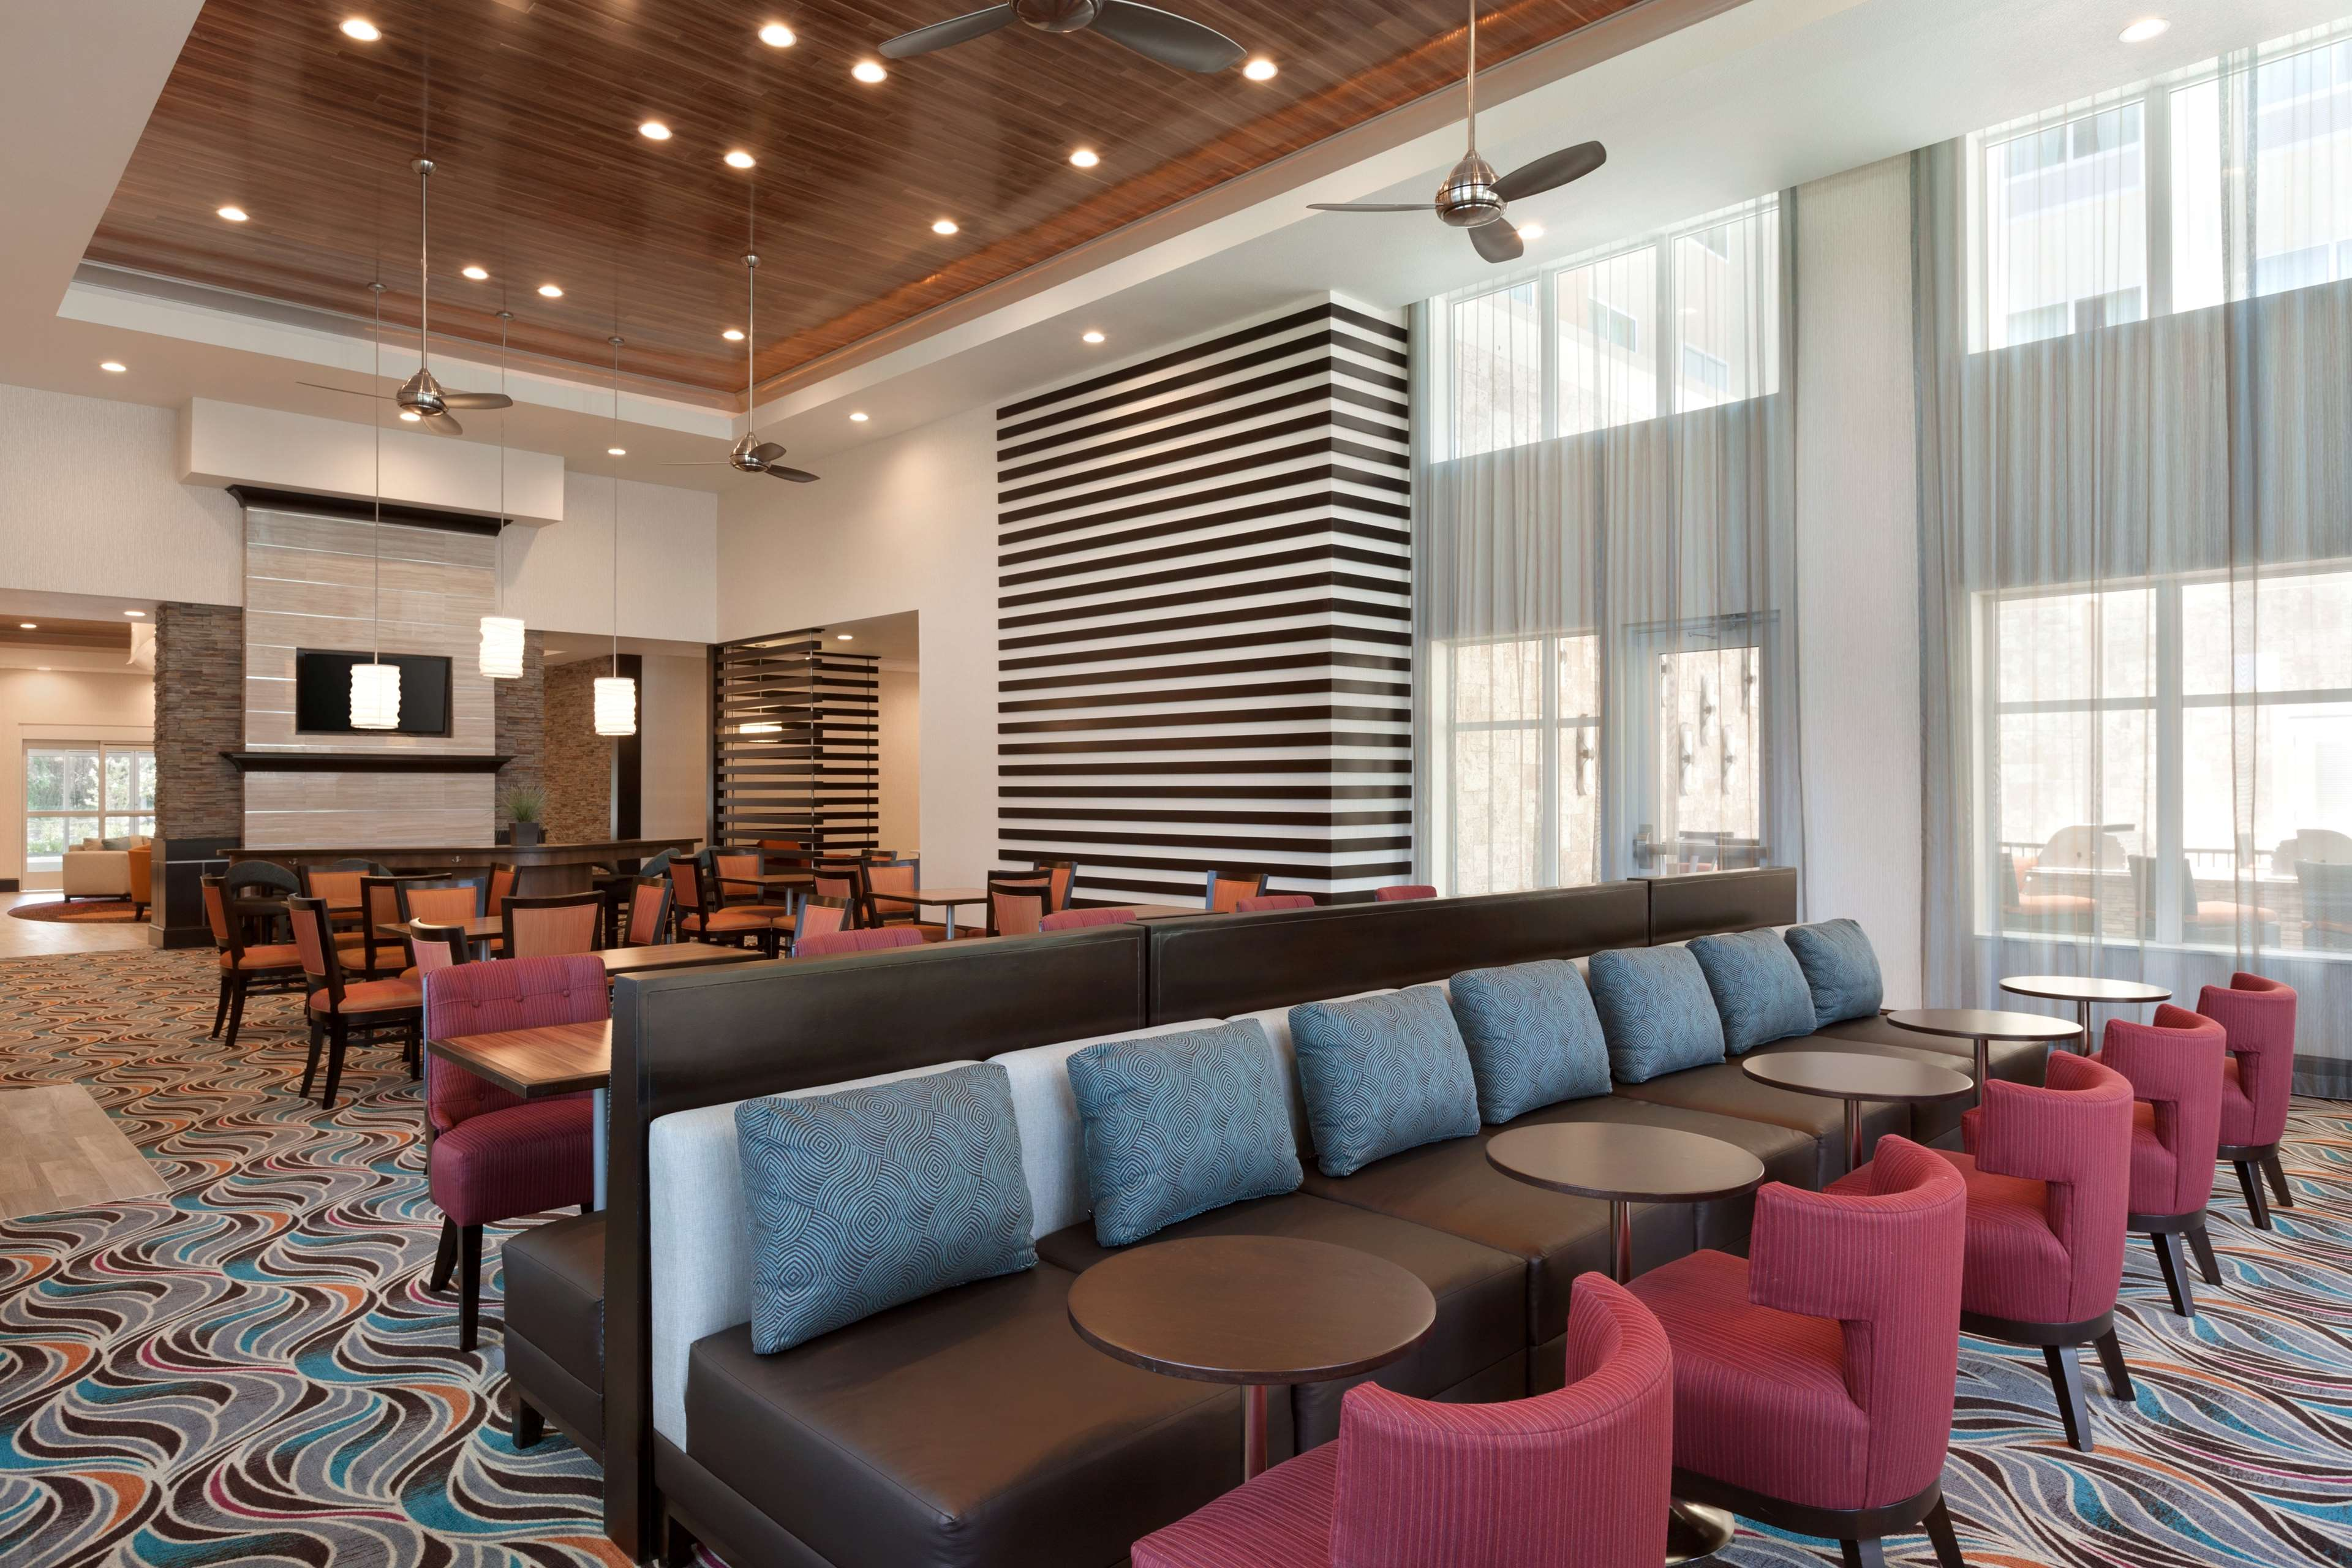 Homewood Suites by Hilton North Houston/Spring image 11